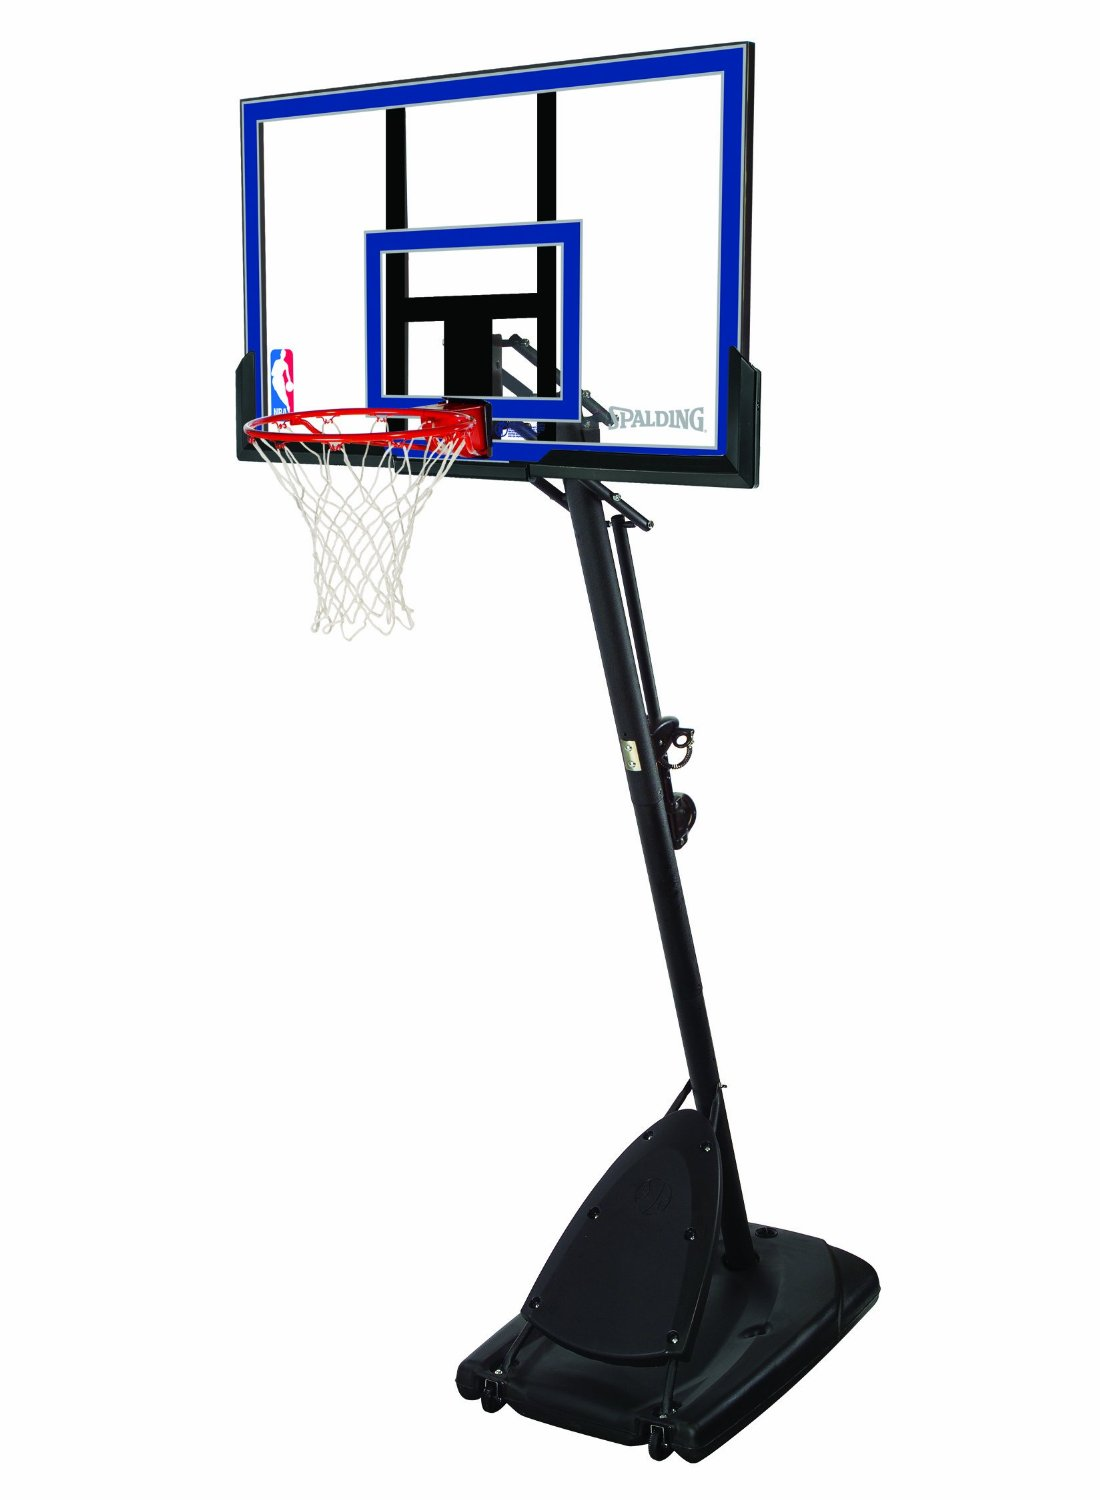 Things to Know Before Buying a Basketball Hoop